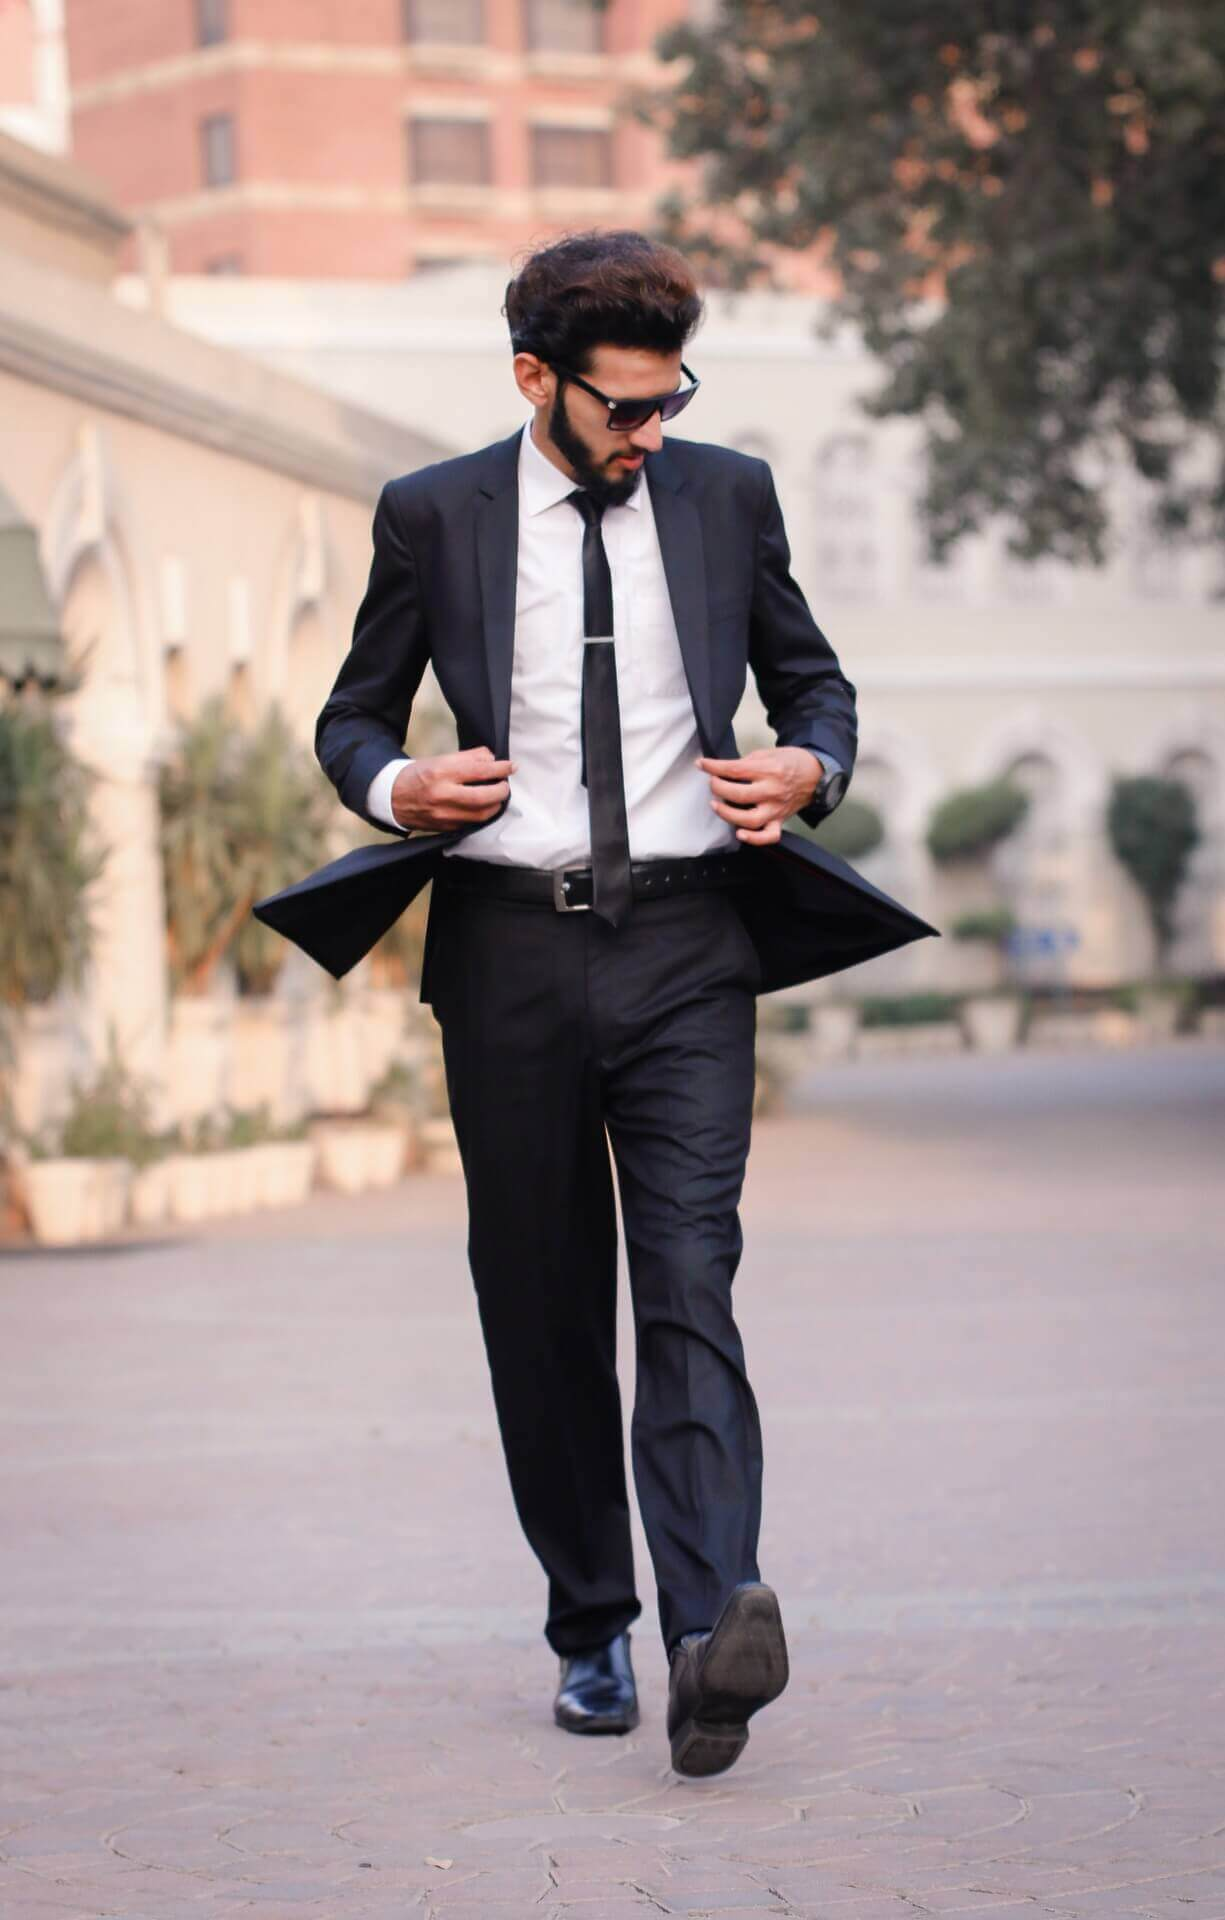 homme en costume cravate dandy